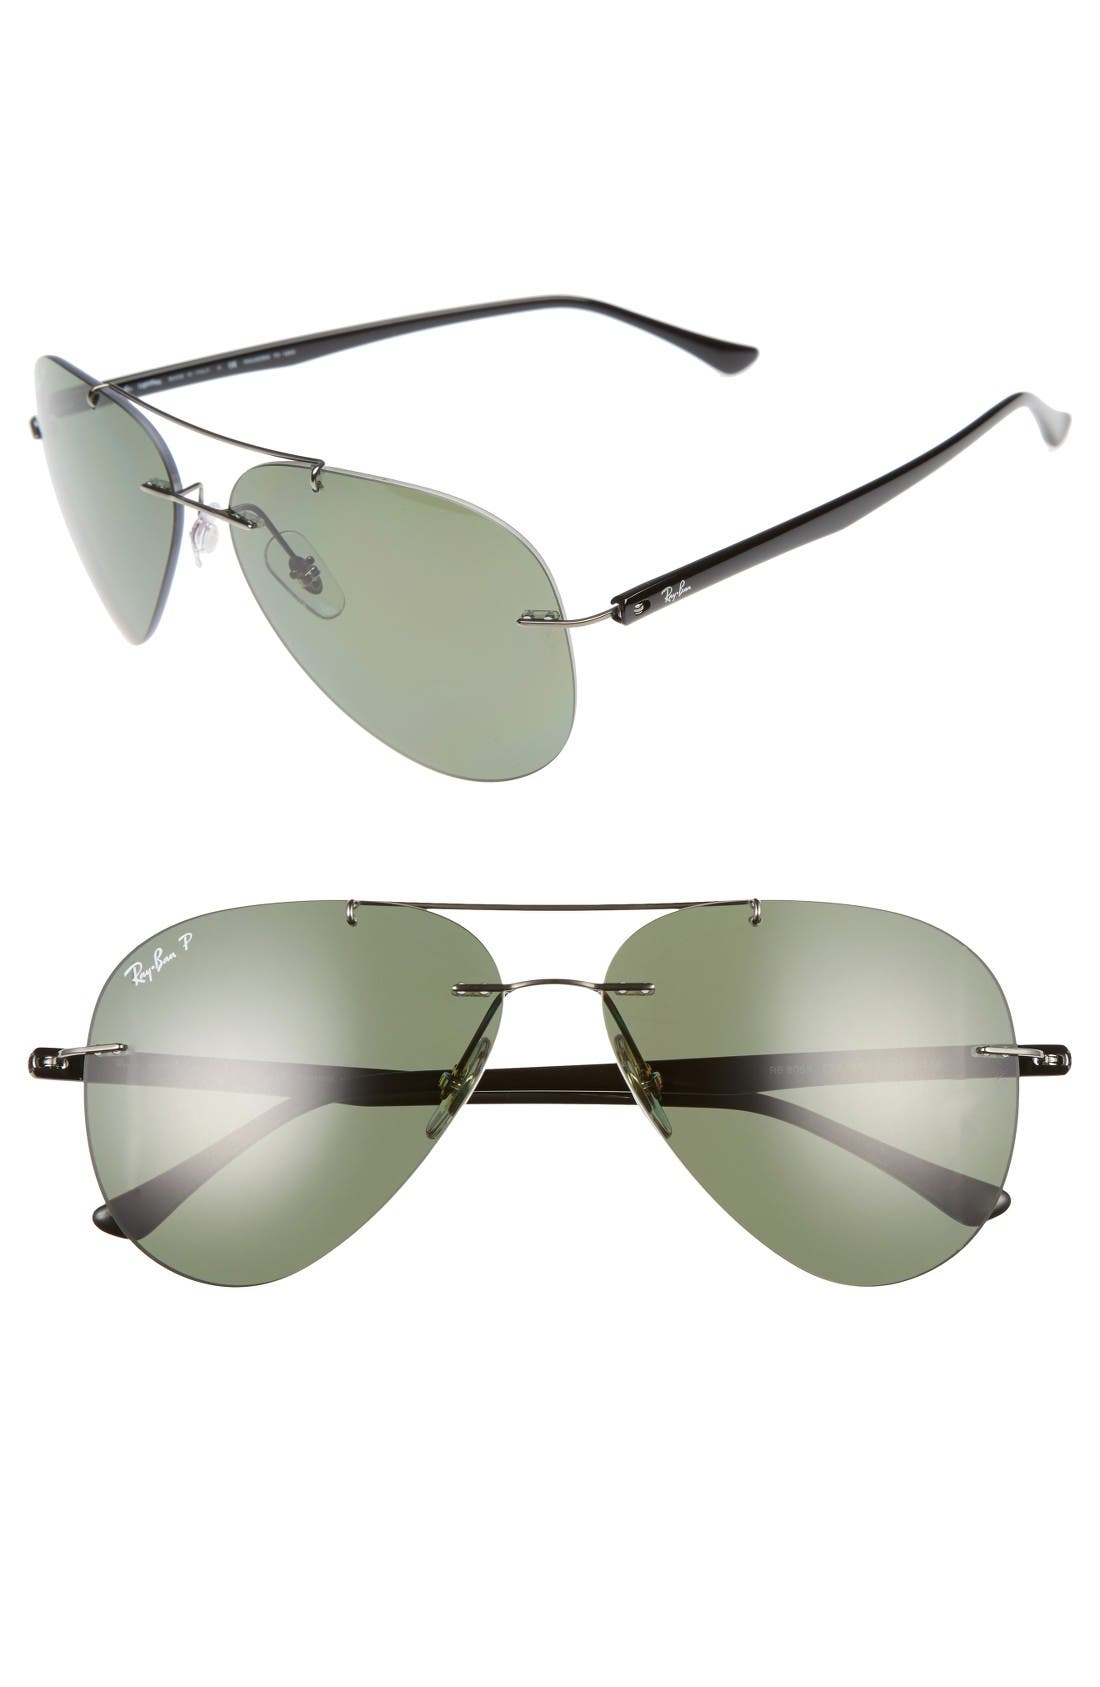 59mm Polarized Aviator Sunglasses,                             Main thumbnail 1, color,                             Gunmetal/ Green